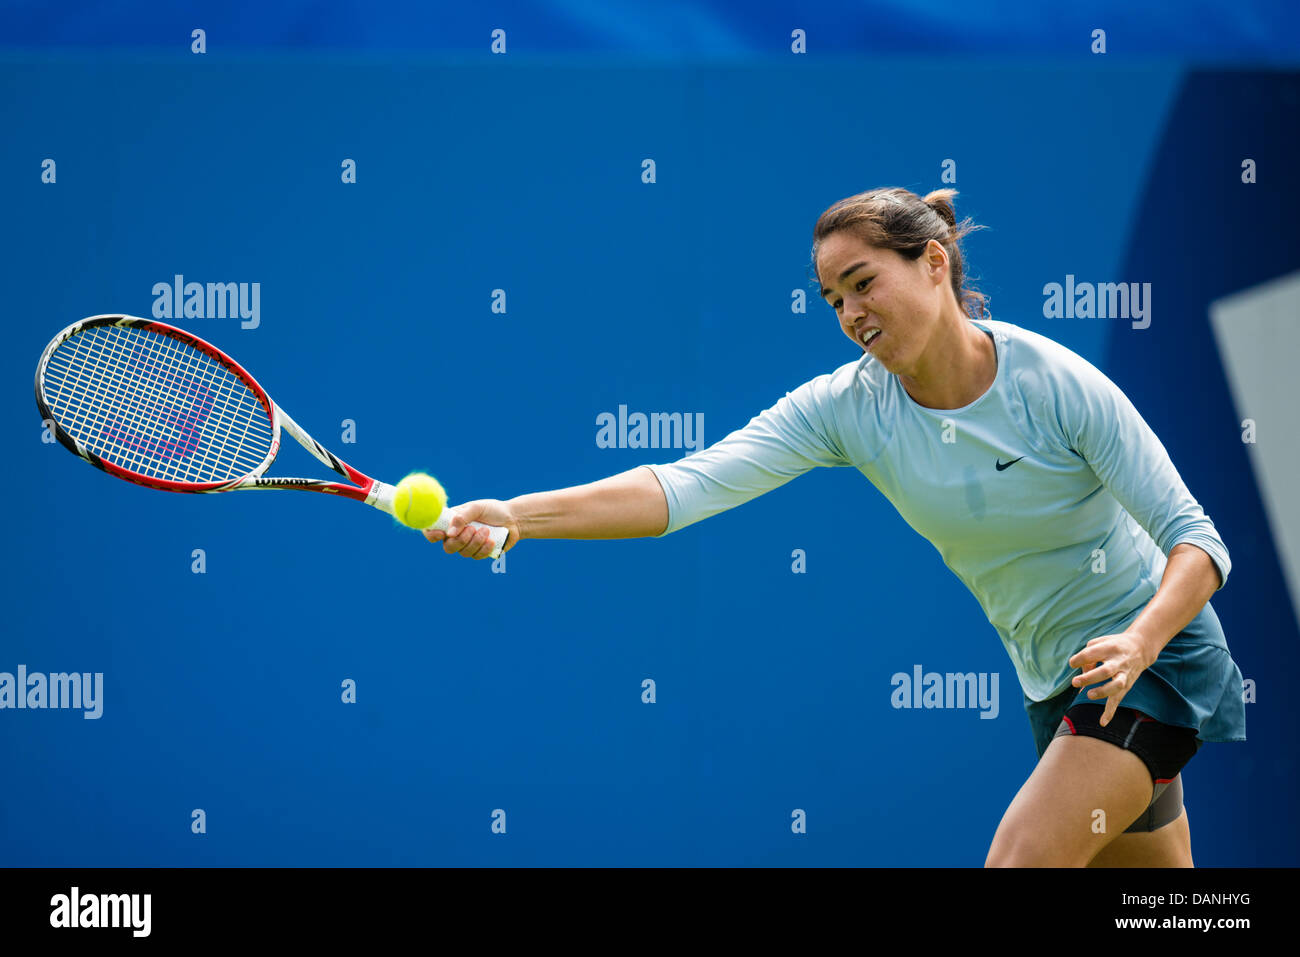 Jamie Hampton of USA in action playing single handed backhand shot - Stock Image